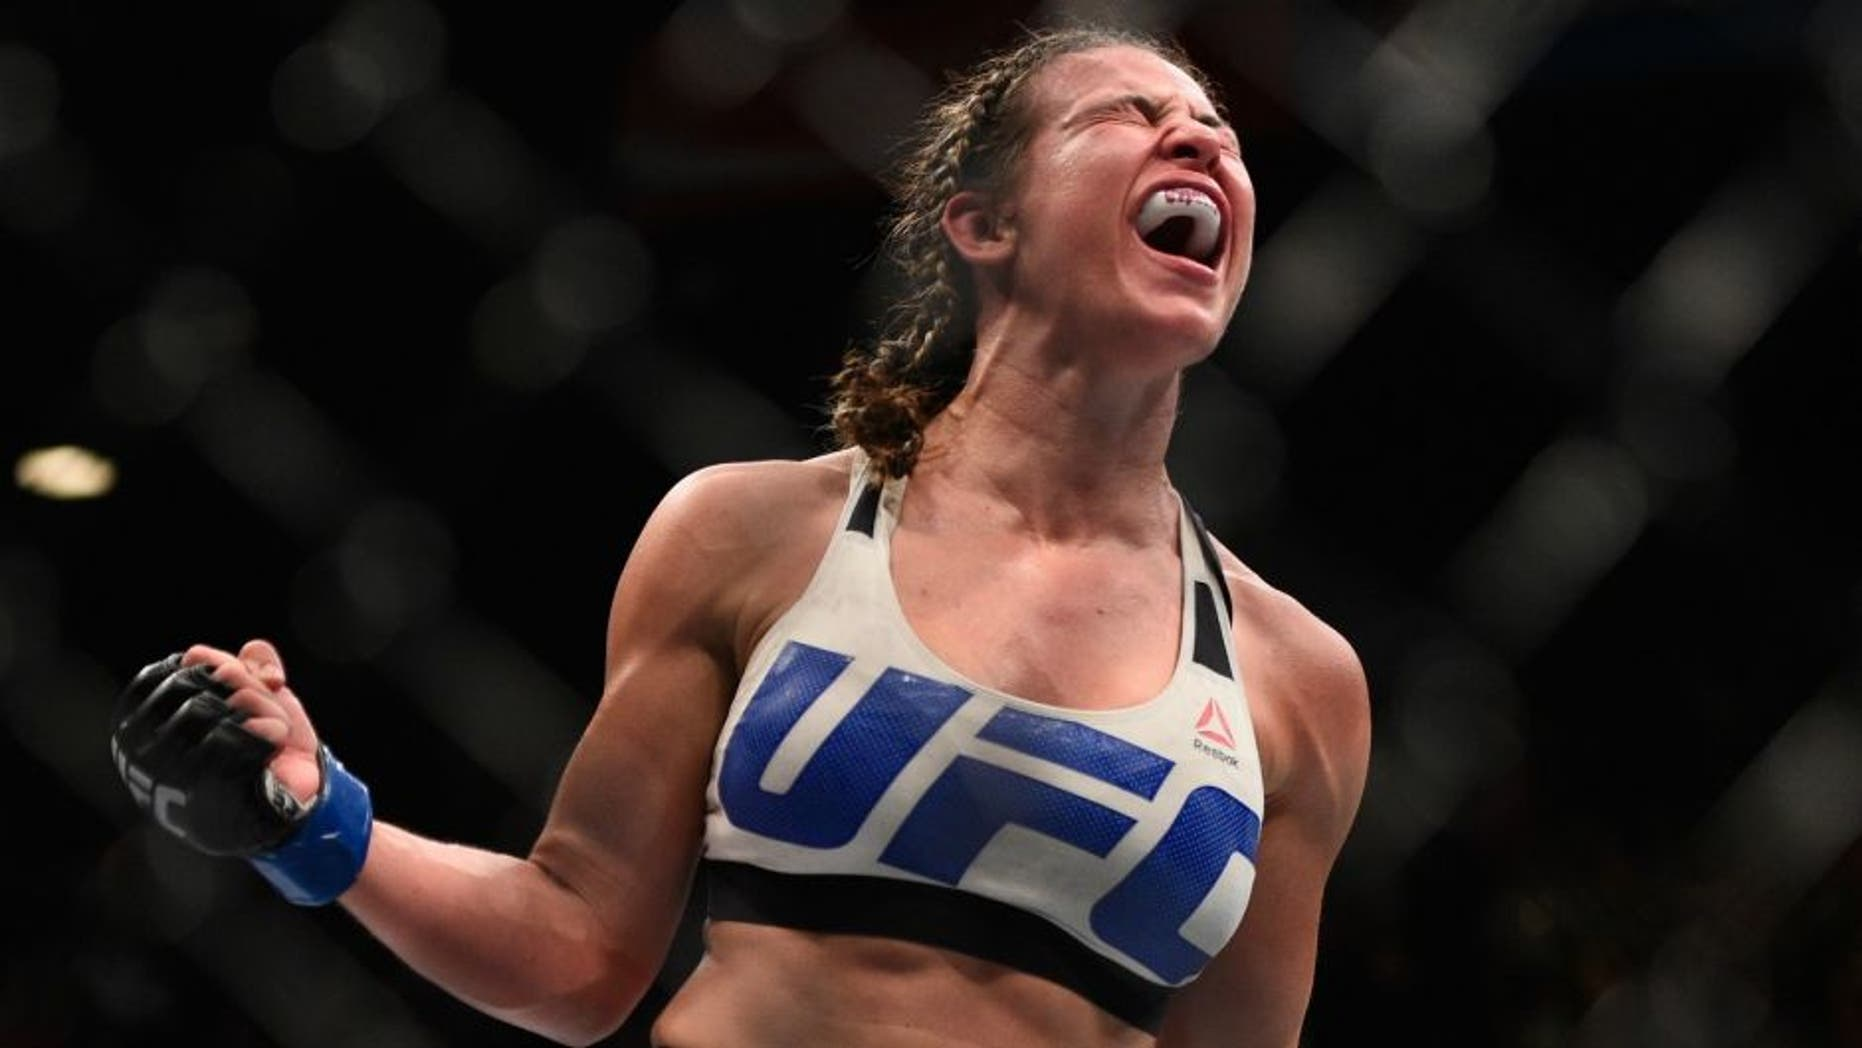 Miesha Tate celebrates after defeating Holly Holm during the UFC 196 event inside MGM Grand Garden Arena on March 5, 2016 in Las Vegas, Nevada. (Photo by Jeff Bottari/Zuffa LLC/Zuffa LLC via Getty Images)